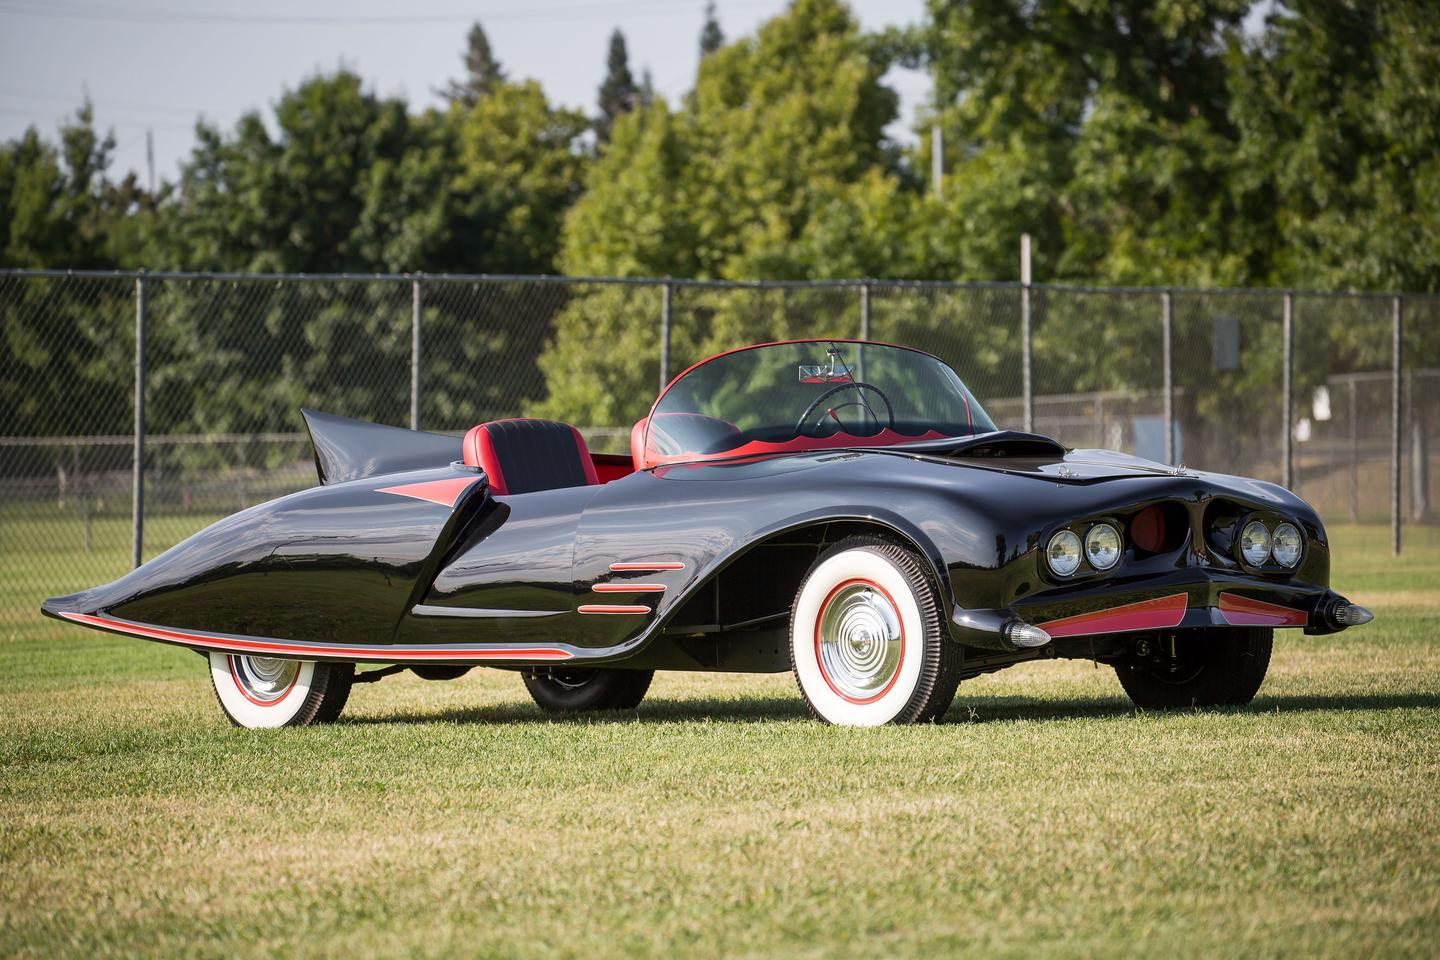 The 1963 Batmobile started life as a Buick